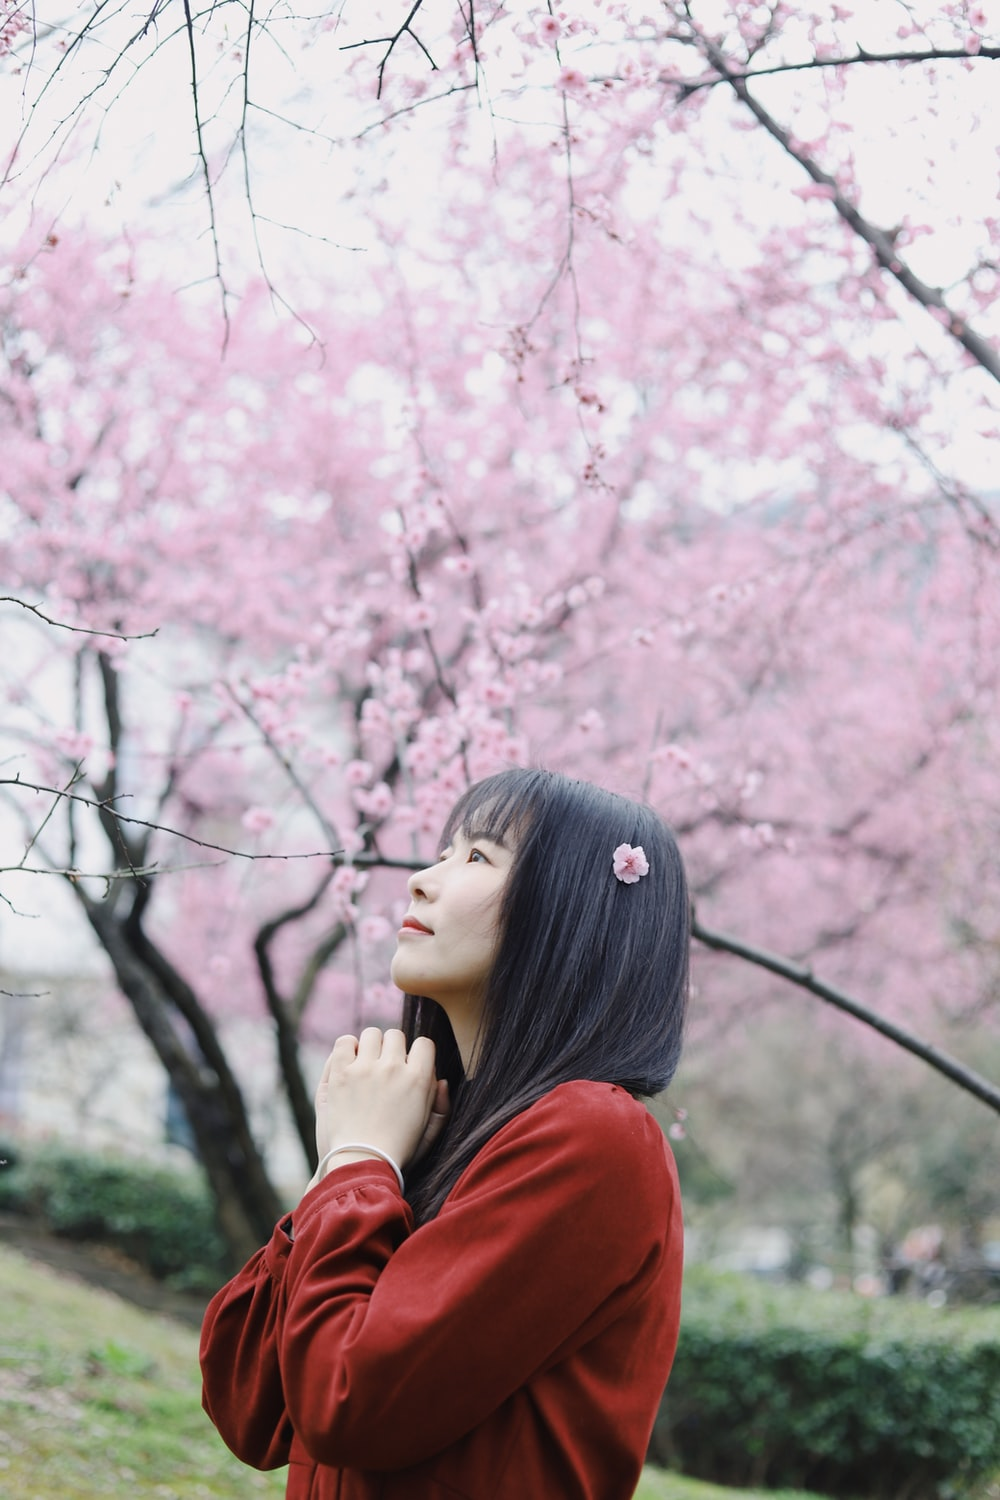 woman in red long sleeve shirt standing under pink cherry blossom tree during daytime